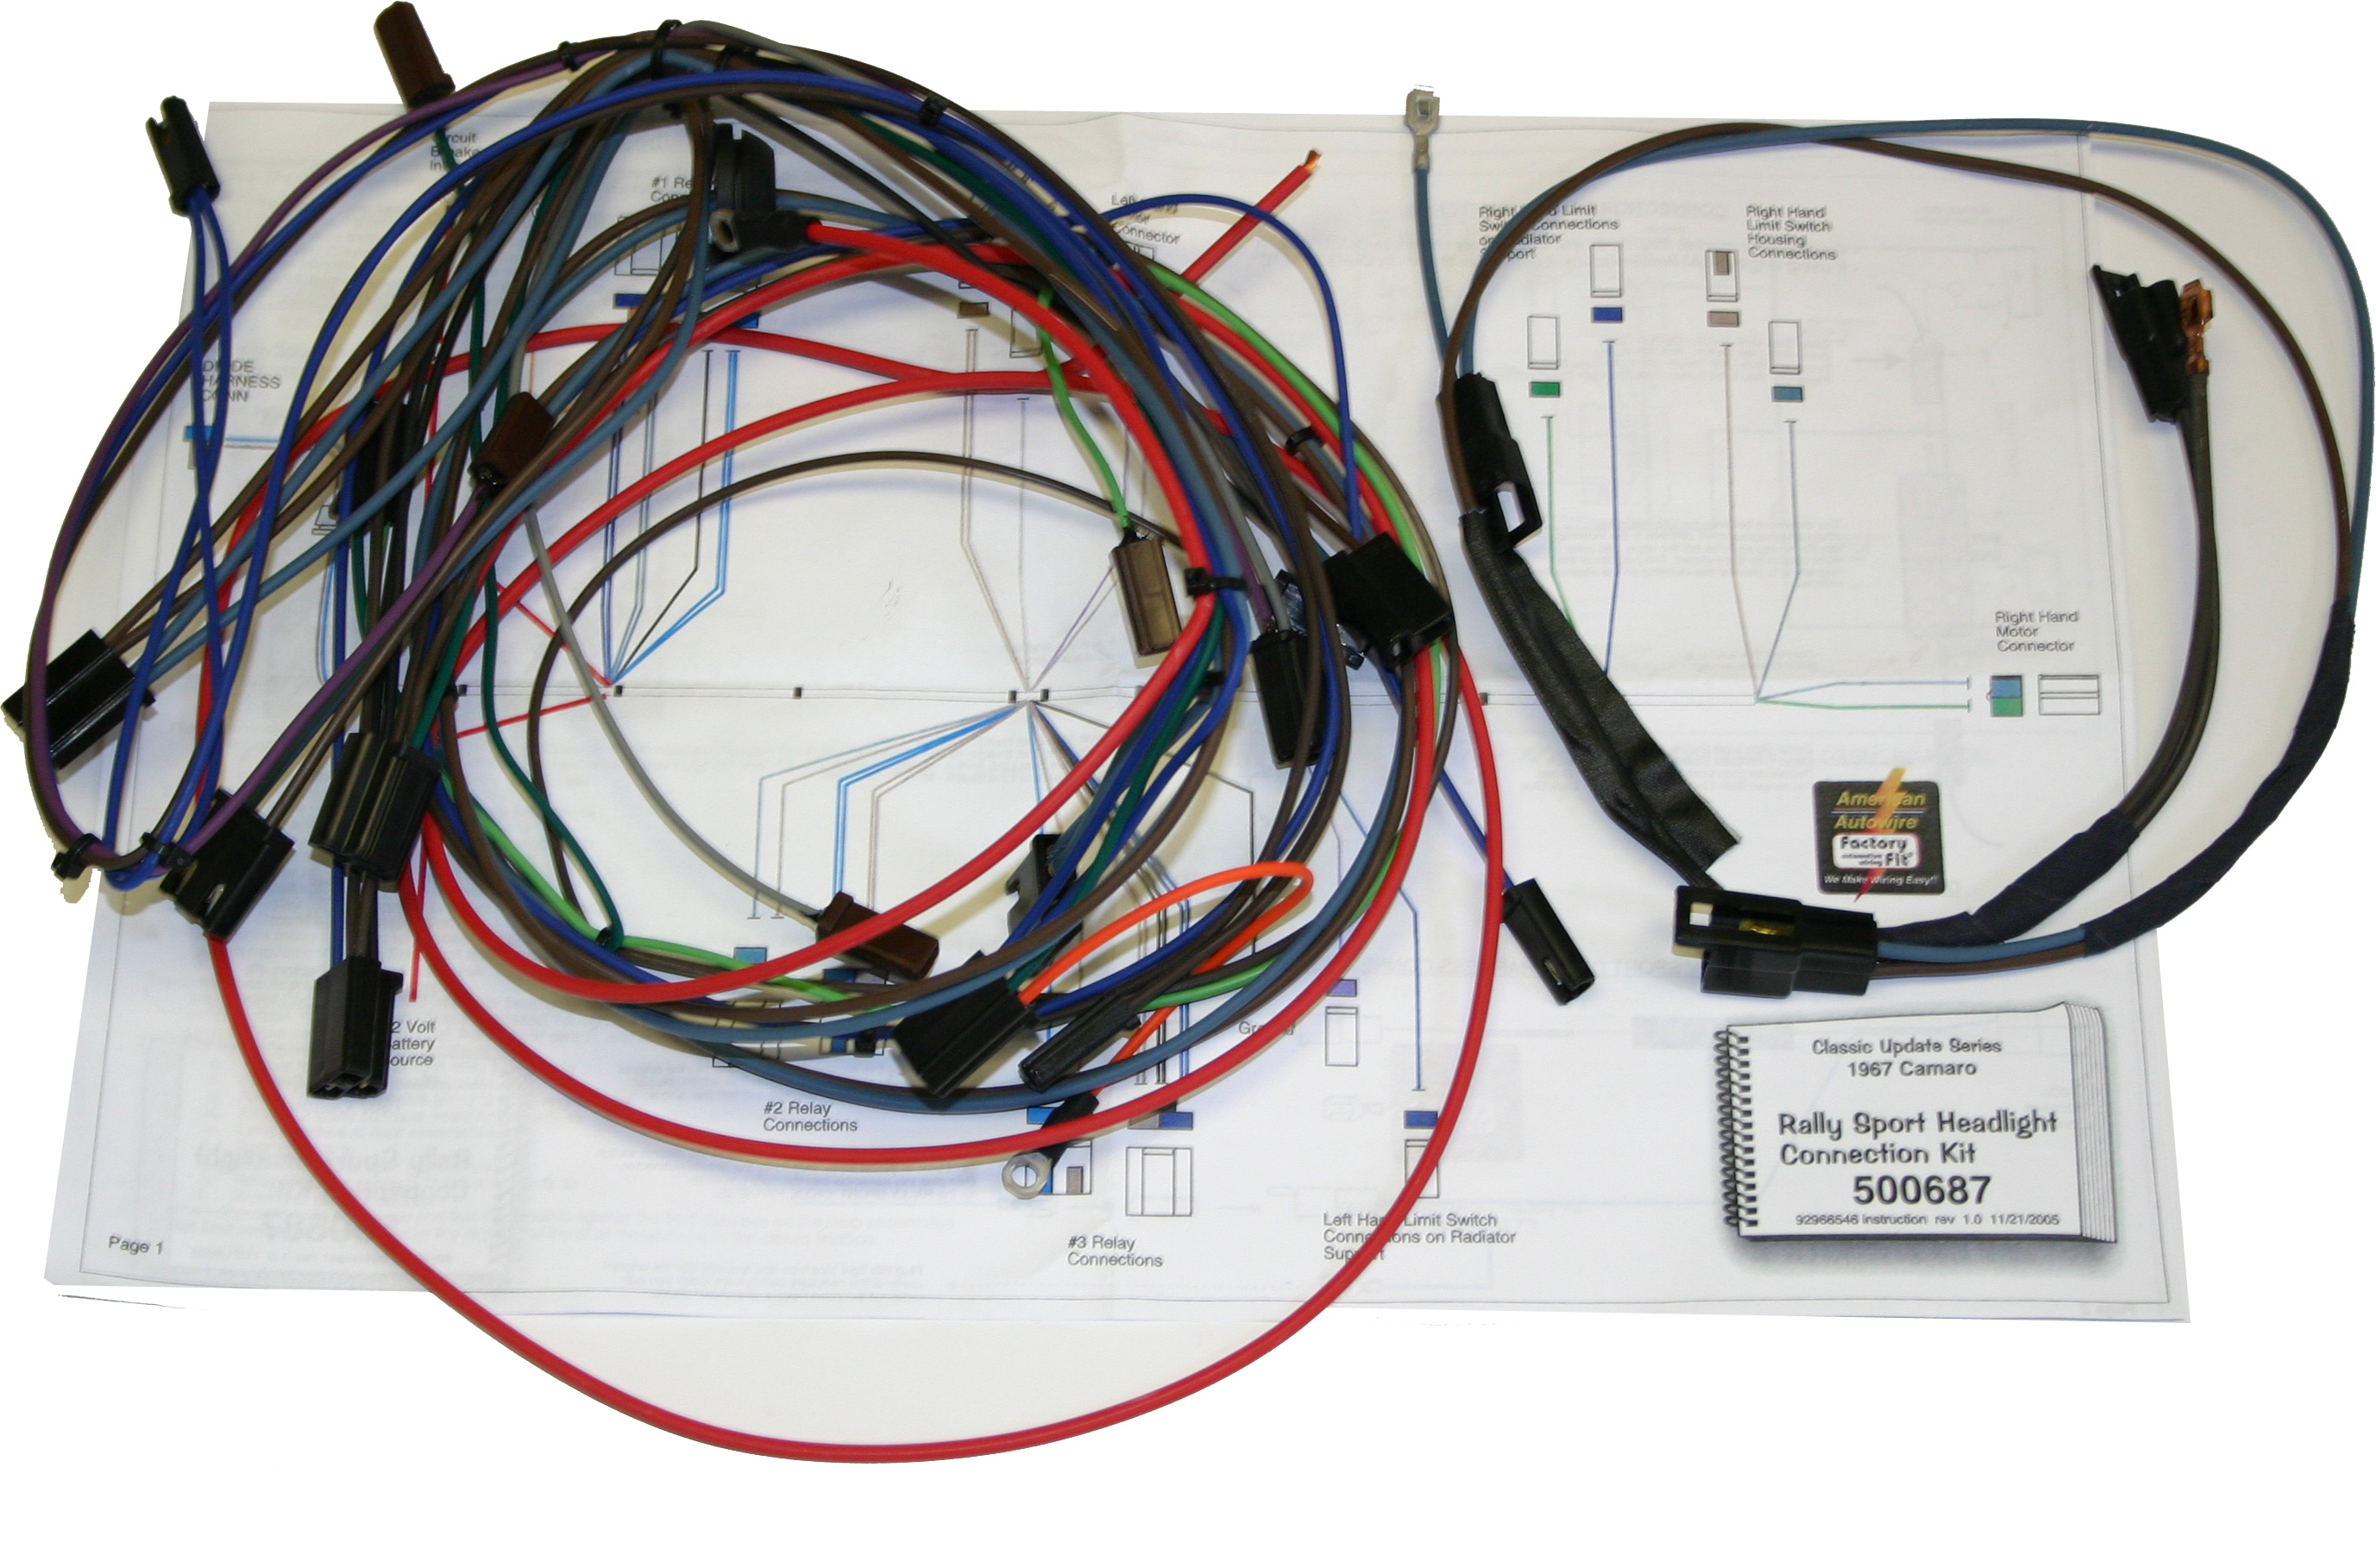 69 Camaro Console Wiring Harness For 66 Lincoln Continental Engine Wiring Diagram Wiringdol Jeanjaures37 Fr